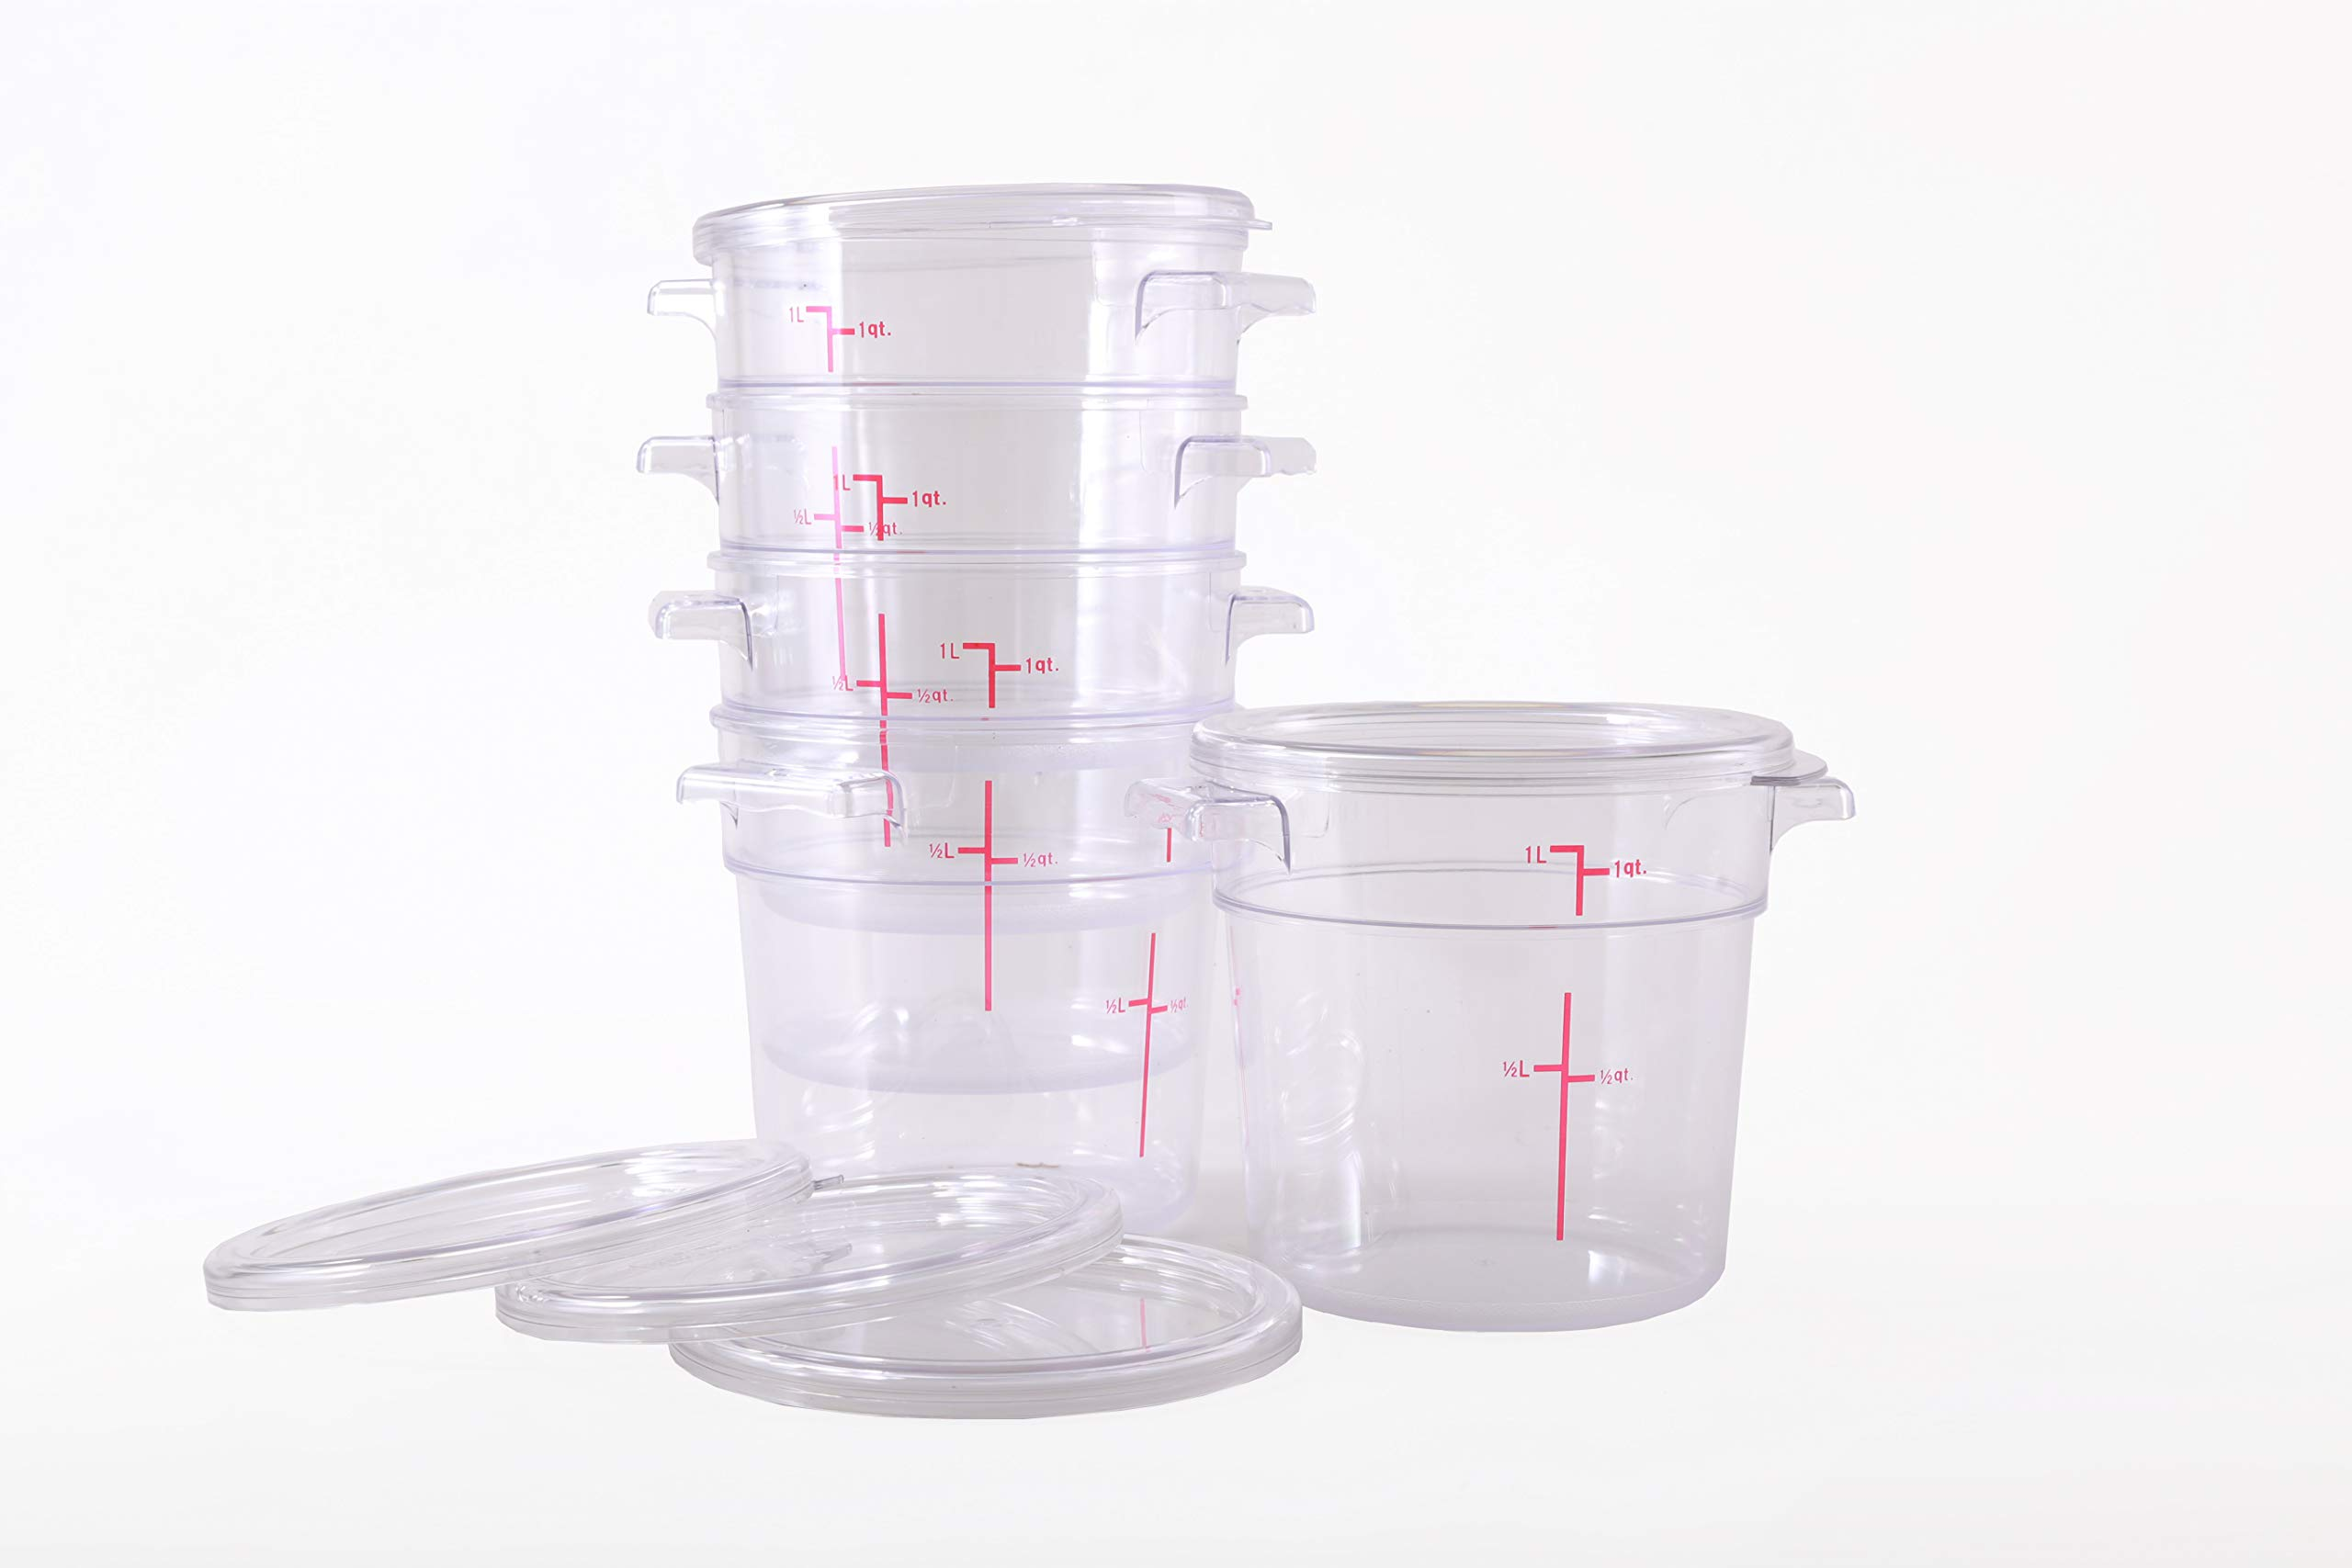 Hakka 1 Qt Commercial Grade Round Food Storage Containers with Lids,Polycarbonate,Clear - Case of 5